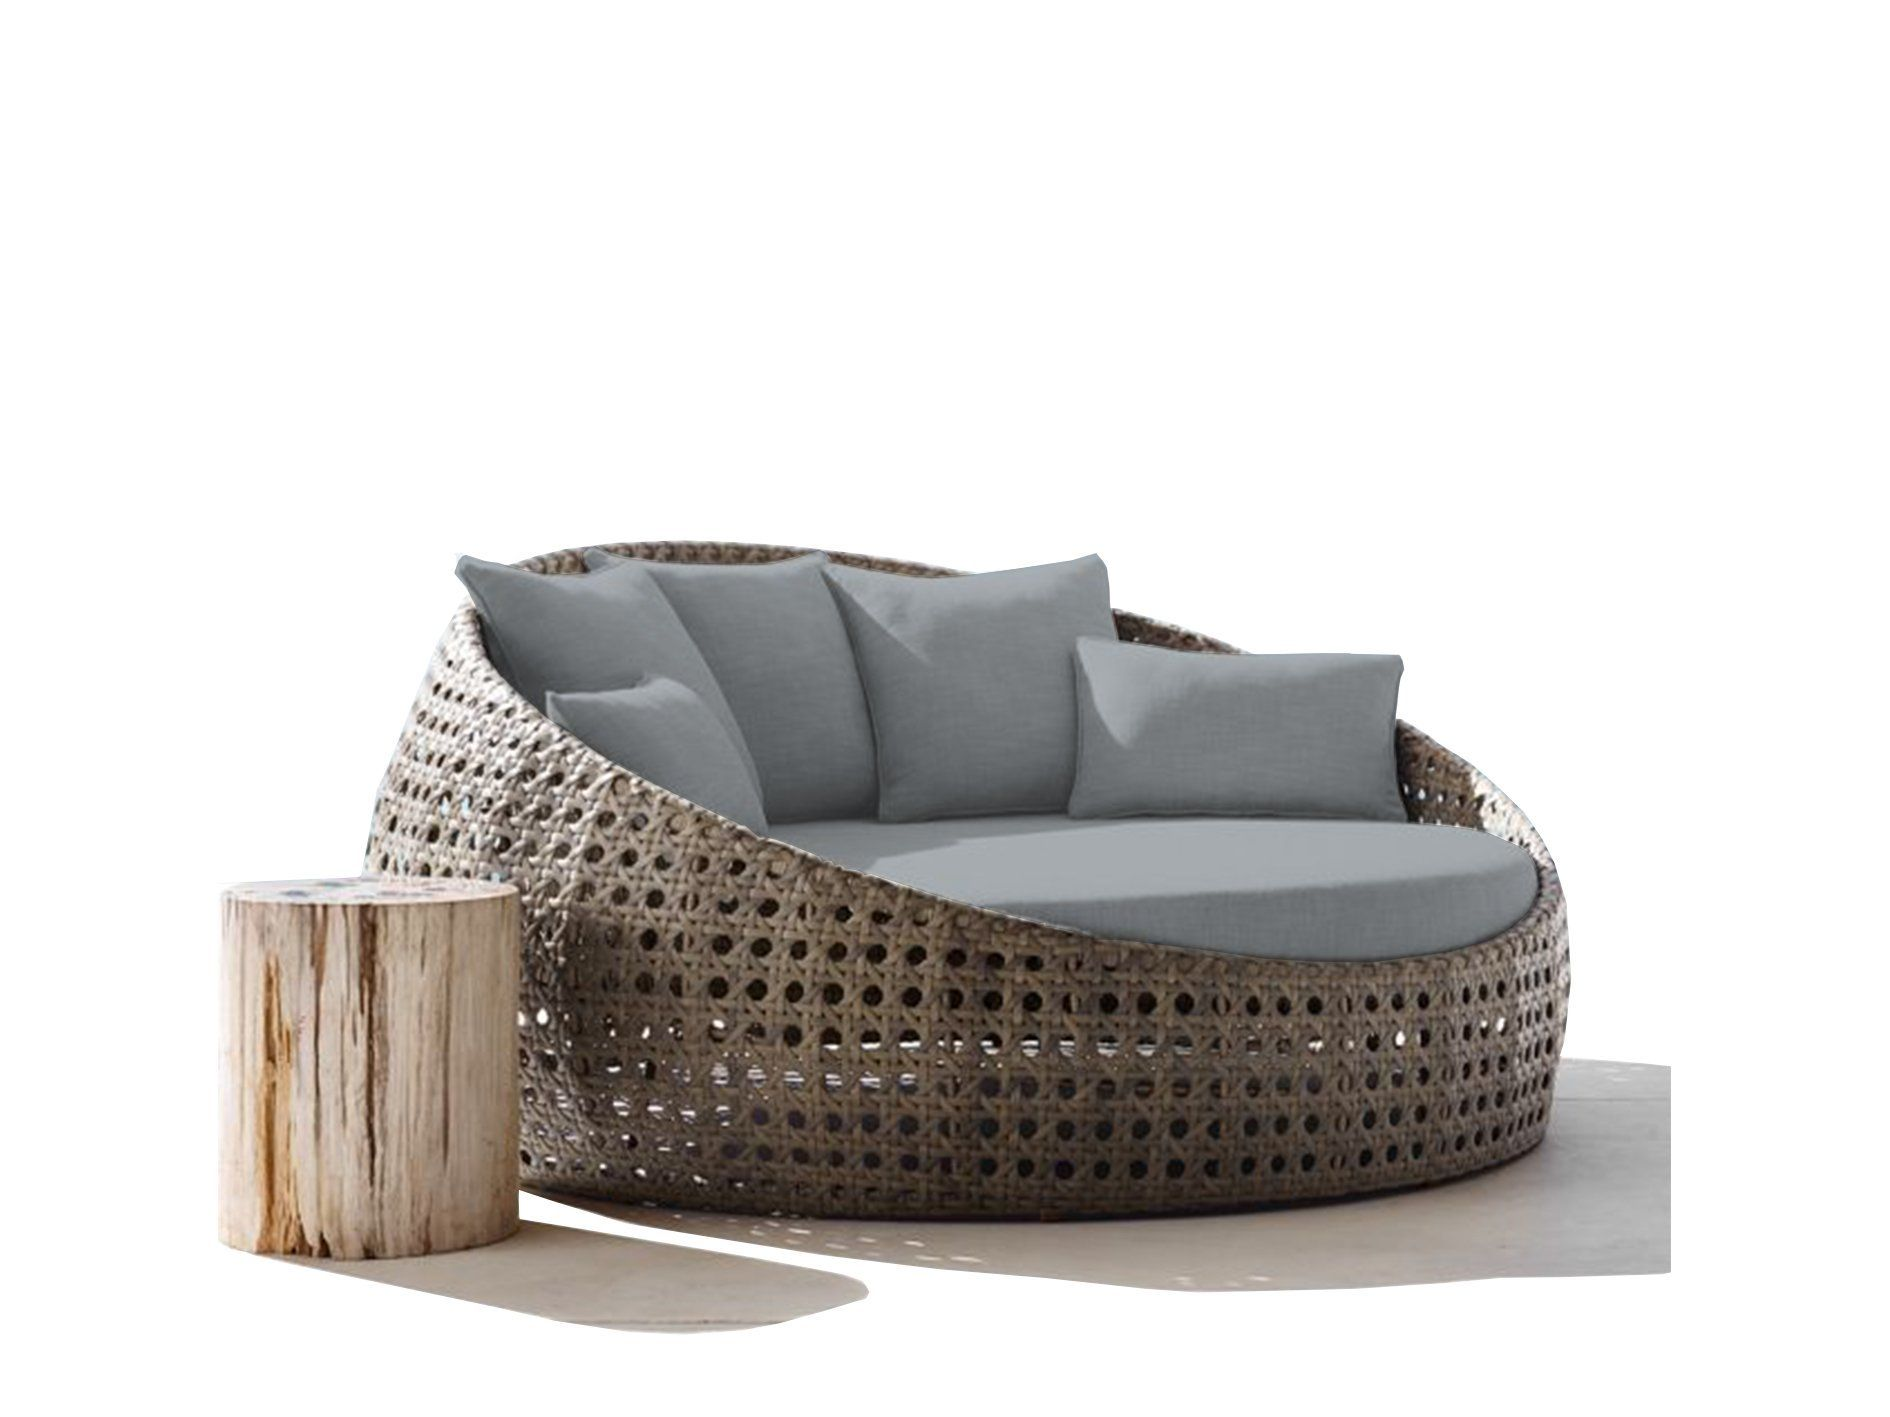 460 Round Outdoor Day Bed Custom Cushions Foam Sales Outdoor Daybed Outdoor Daybed Cushion Custom Cushions